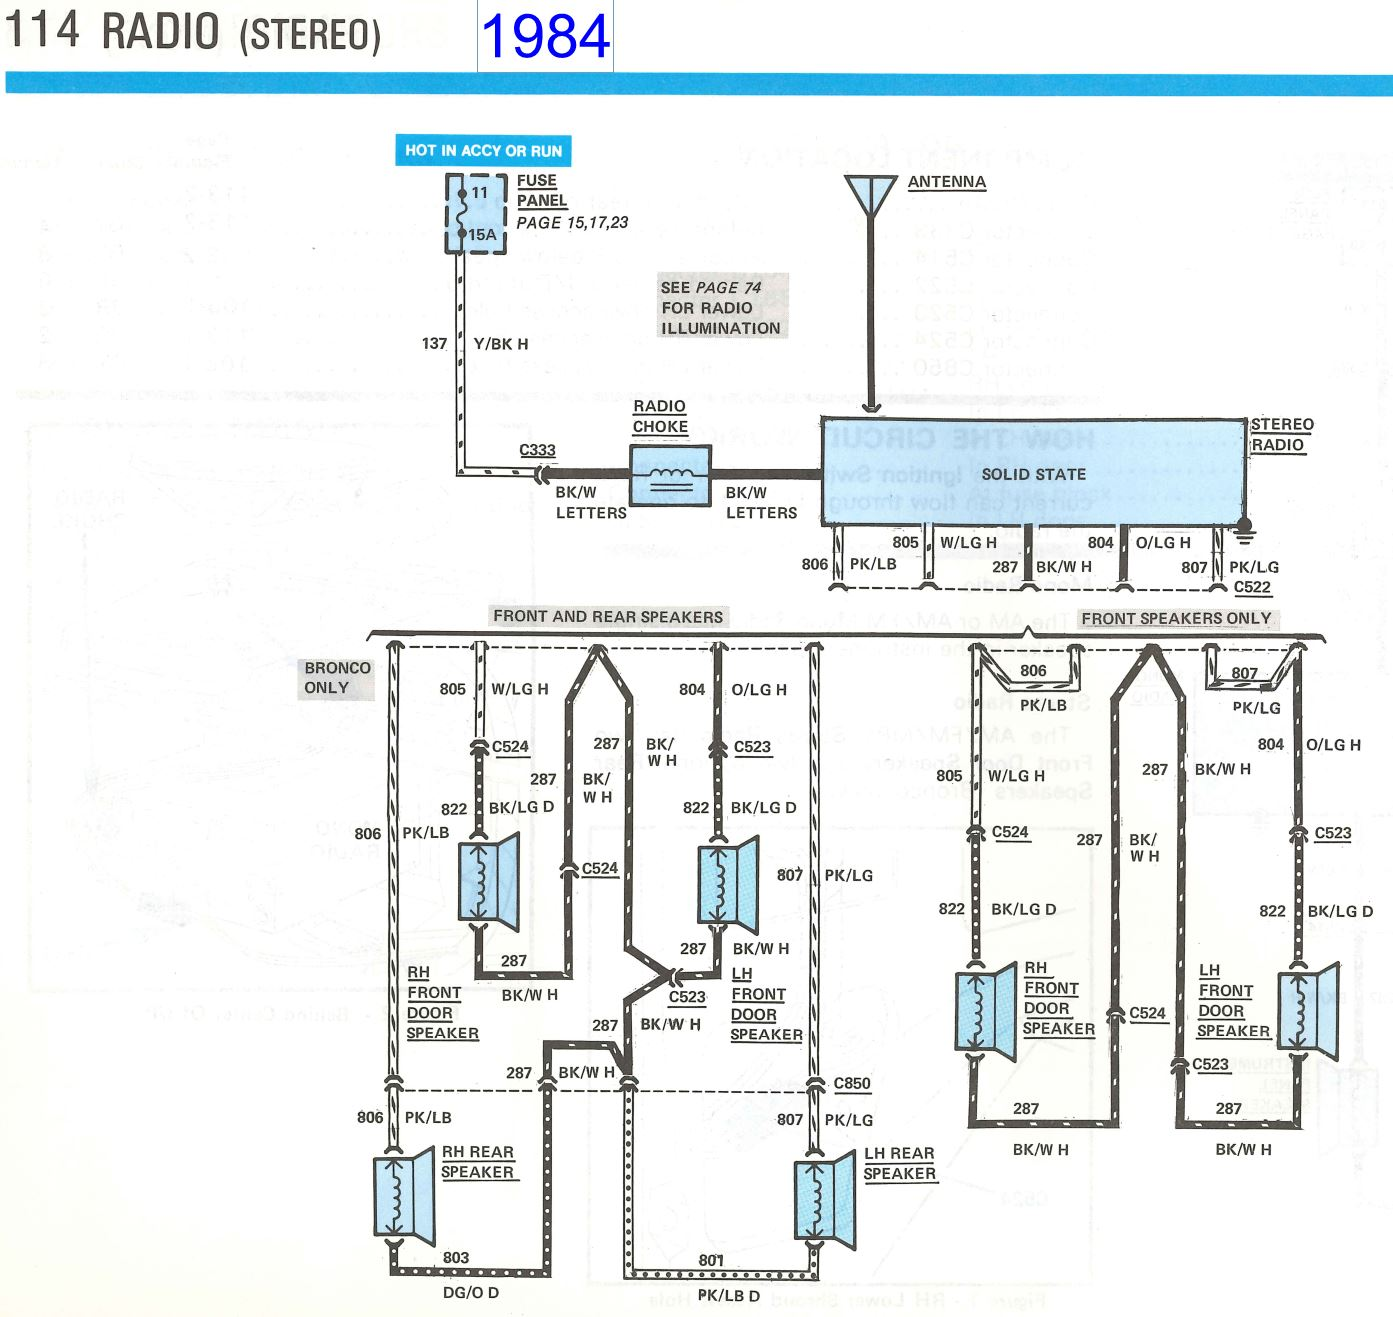 Bullnose Enthusiasts Radio Wiring Questions E4od To Zf5 Diagram Heres All I Know About For These Trucks From The 1981 1984 1985 And 1986 Evtm